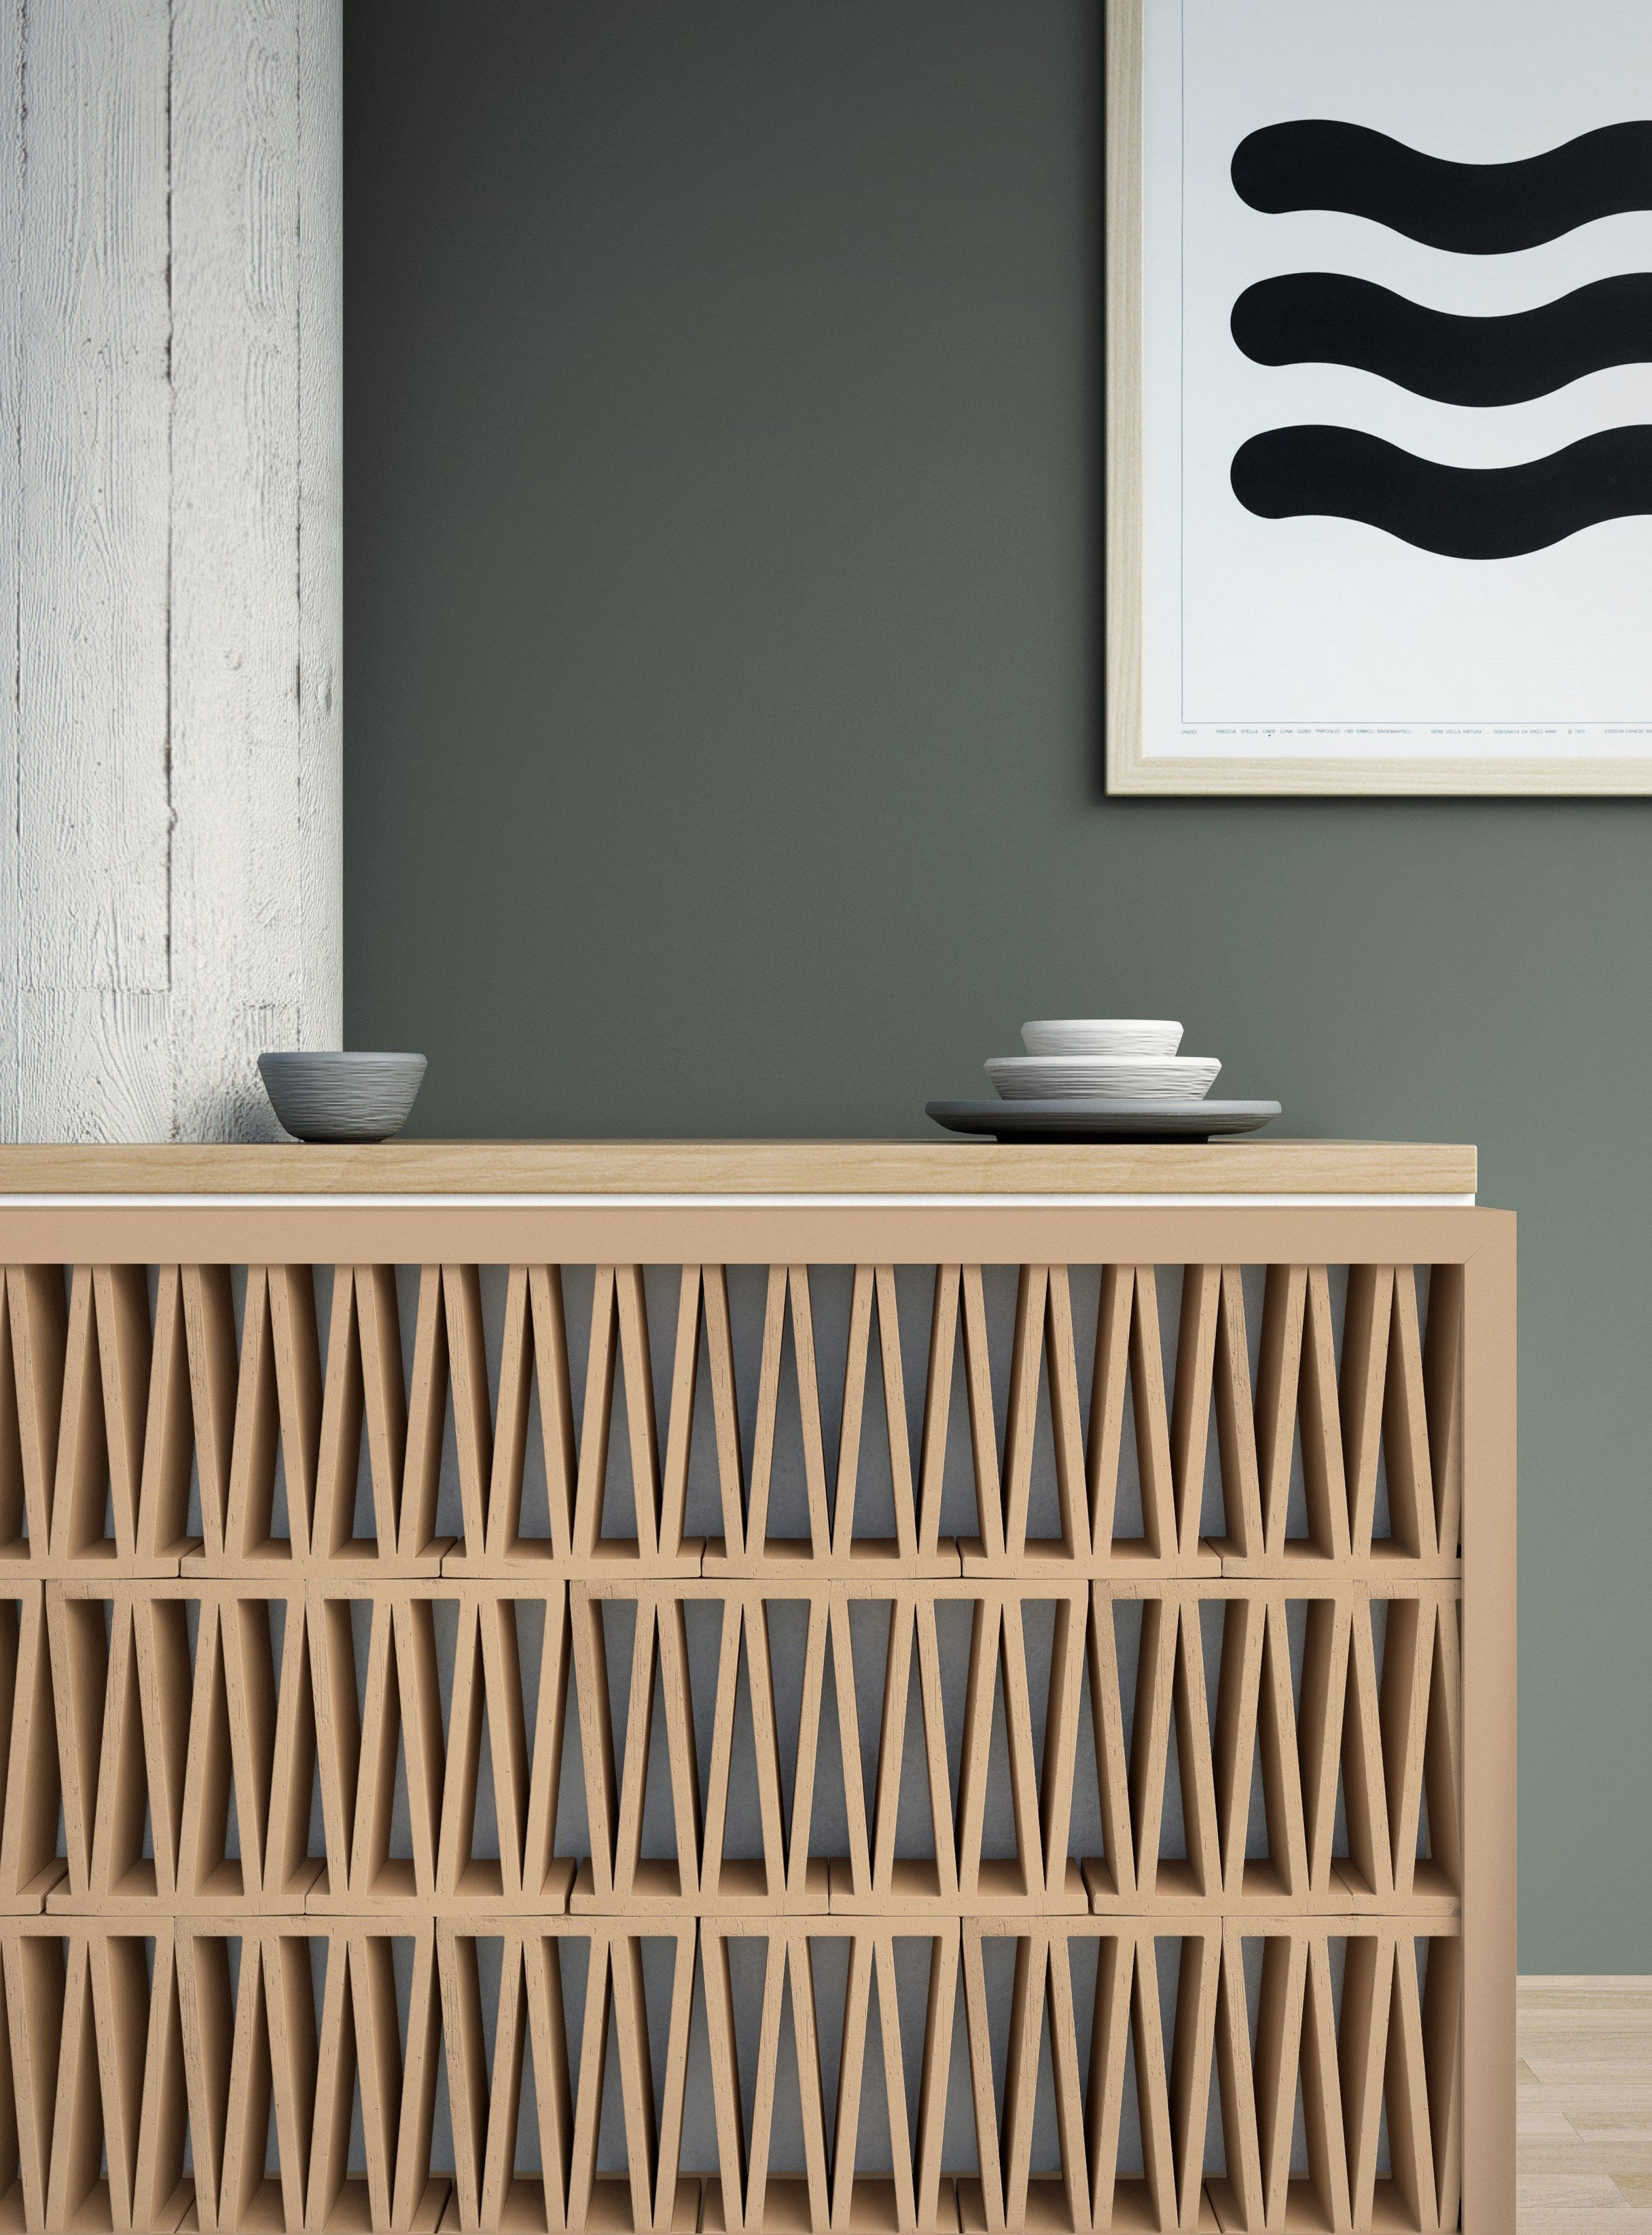 Inexpensive Room Separators Exit Coper: Terracotta Room Divider CELOSIA By Mutina Design Patricia